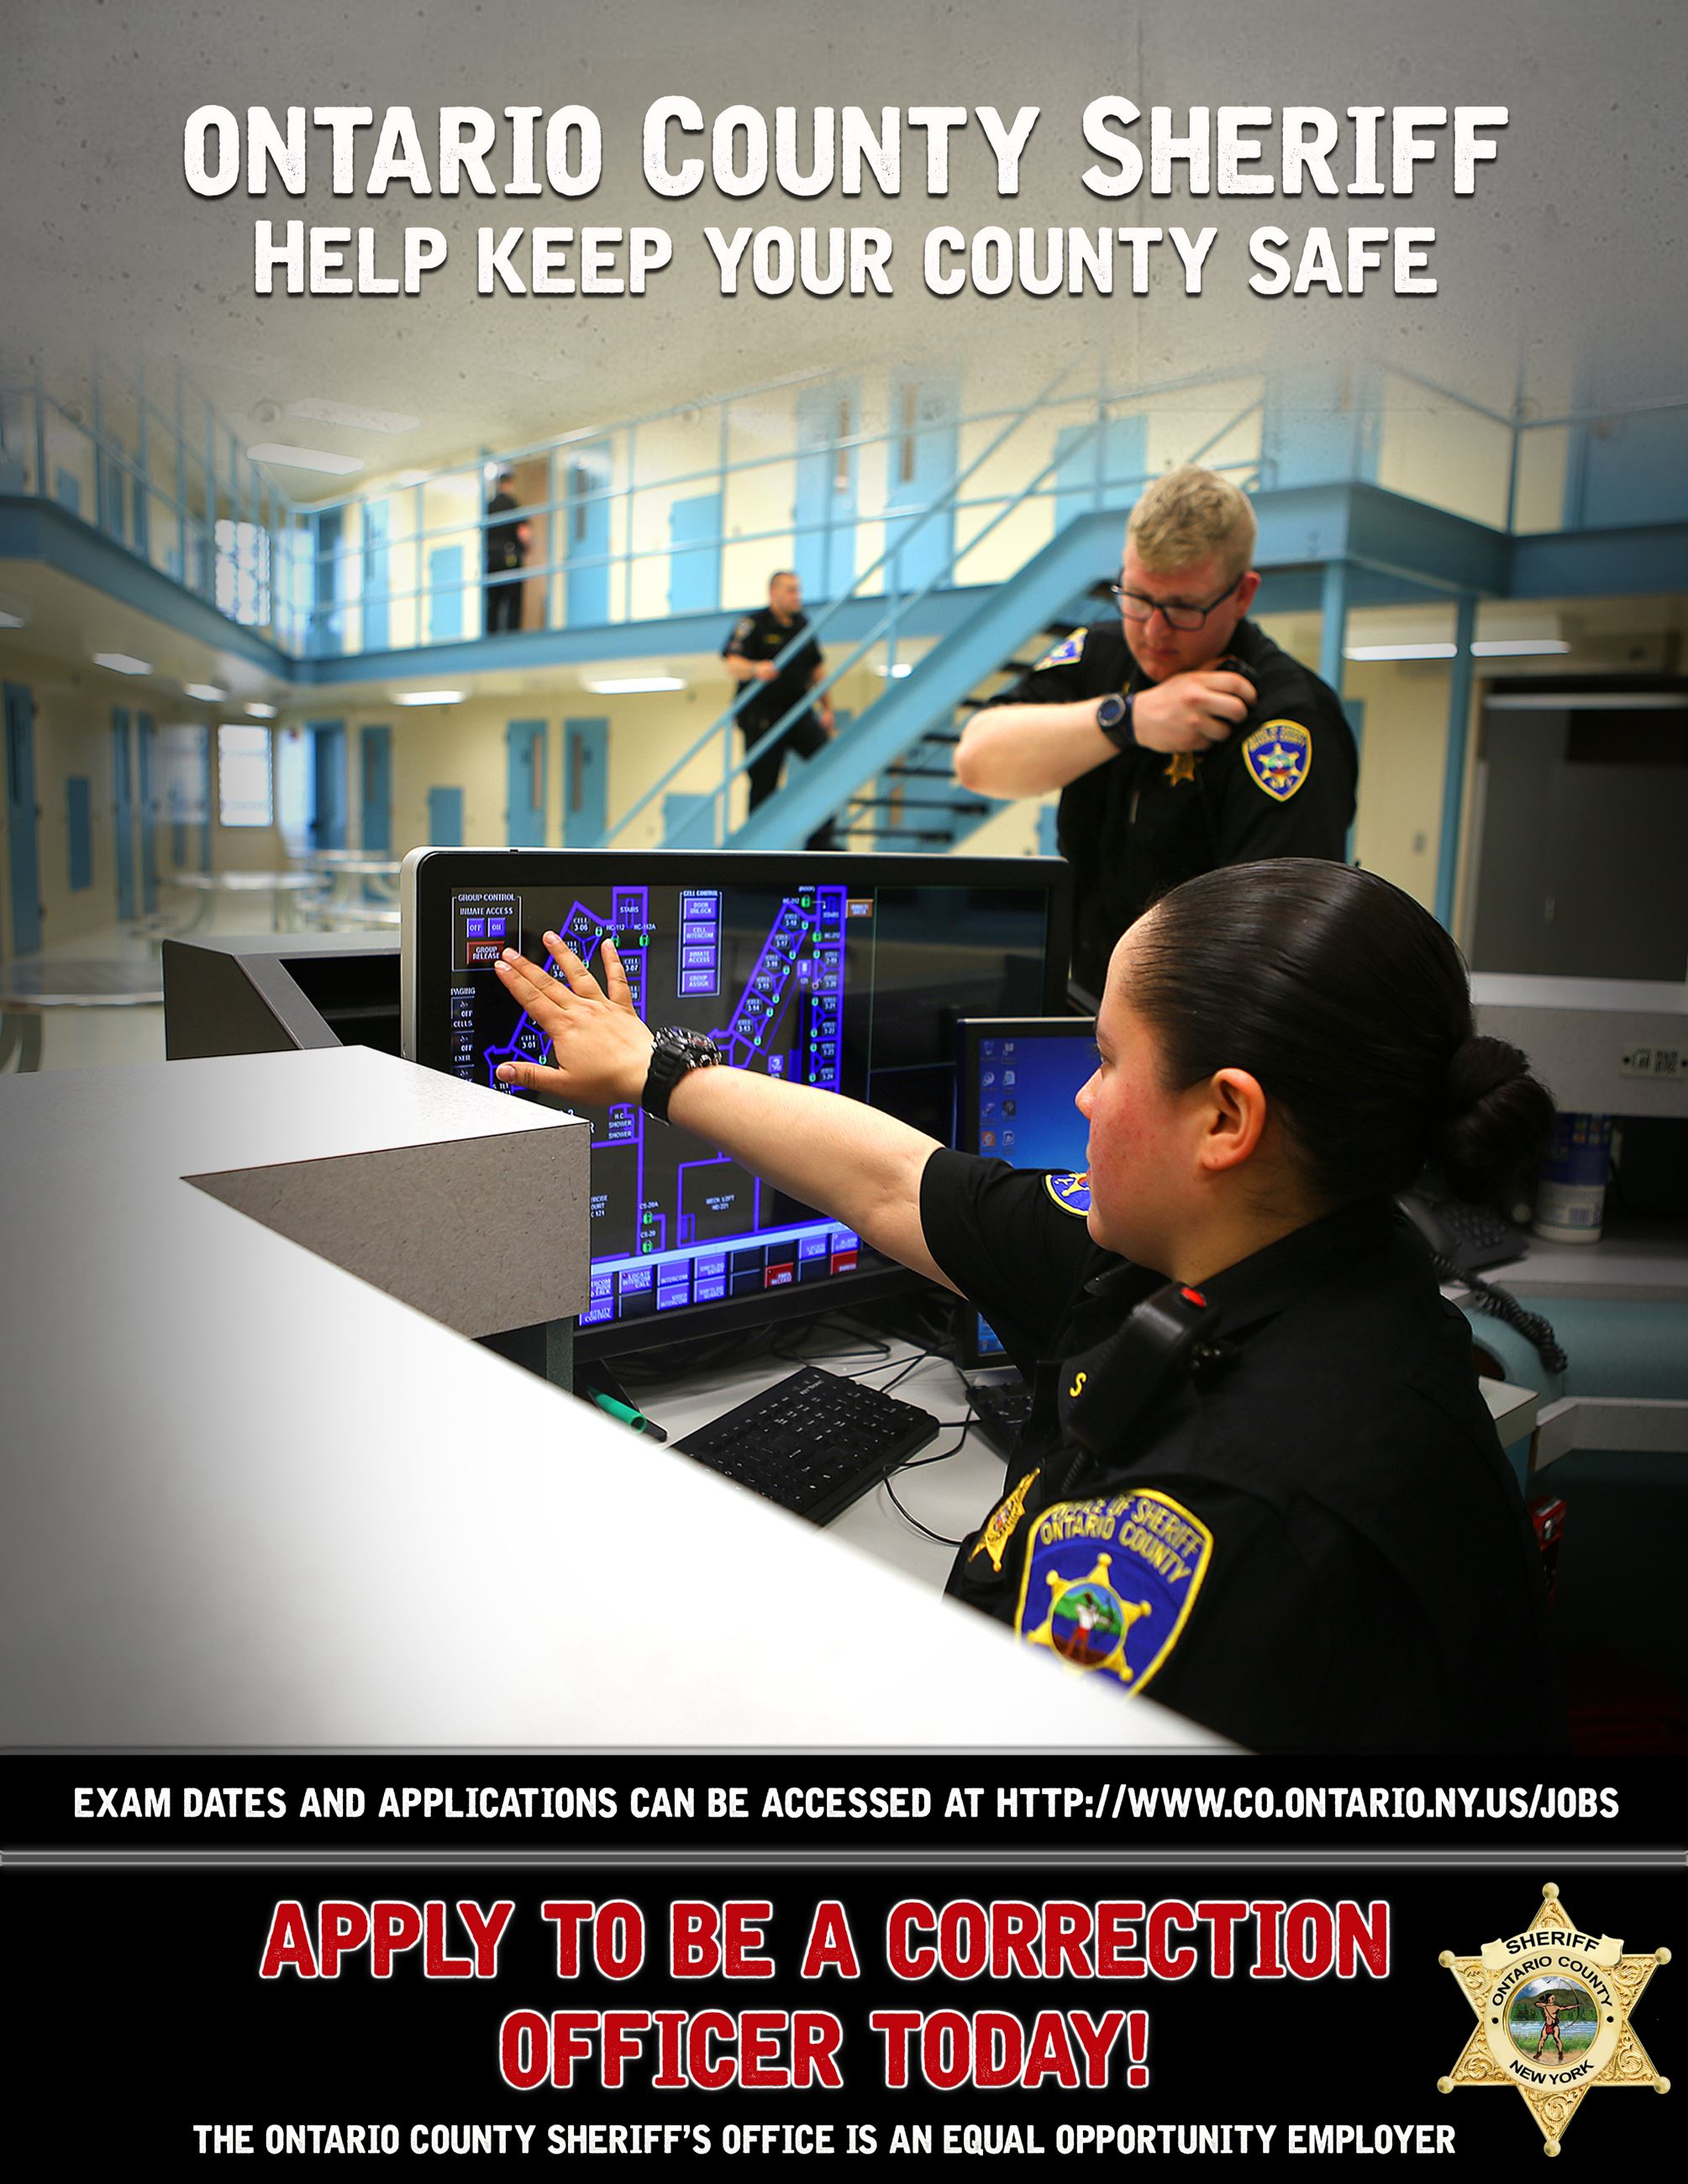 Sheriff | Ontario County, NY - Official Website